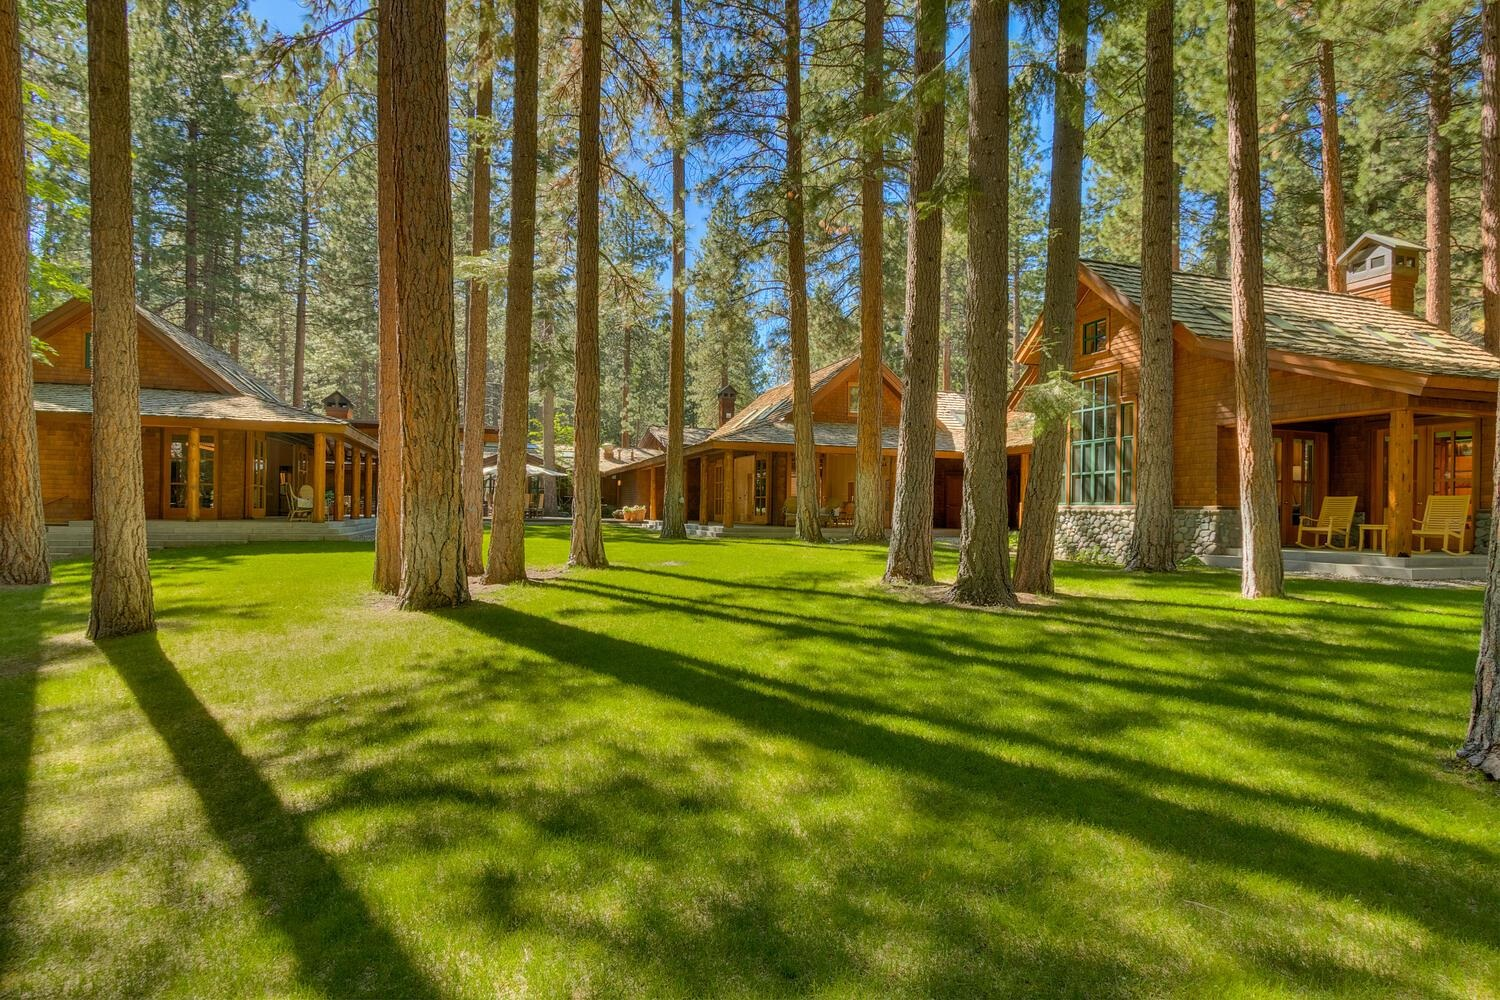 Image for 1061 Lakeshore Boulevard, Incline Village, NV 89451